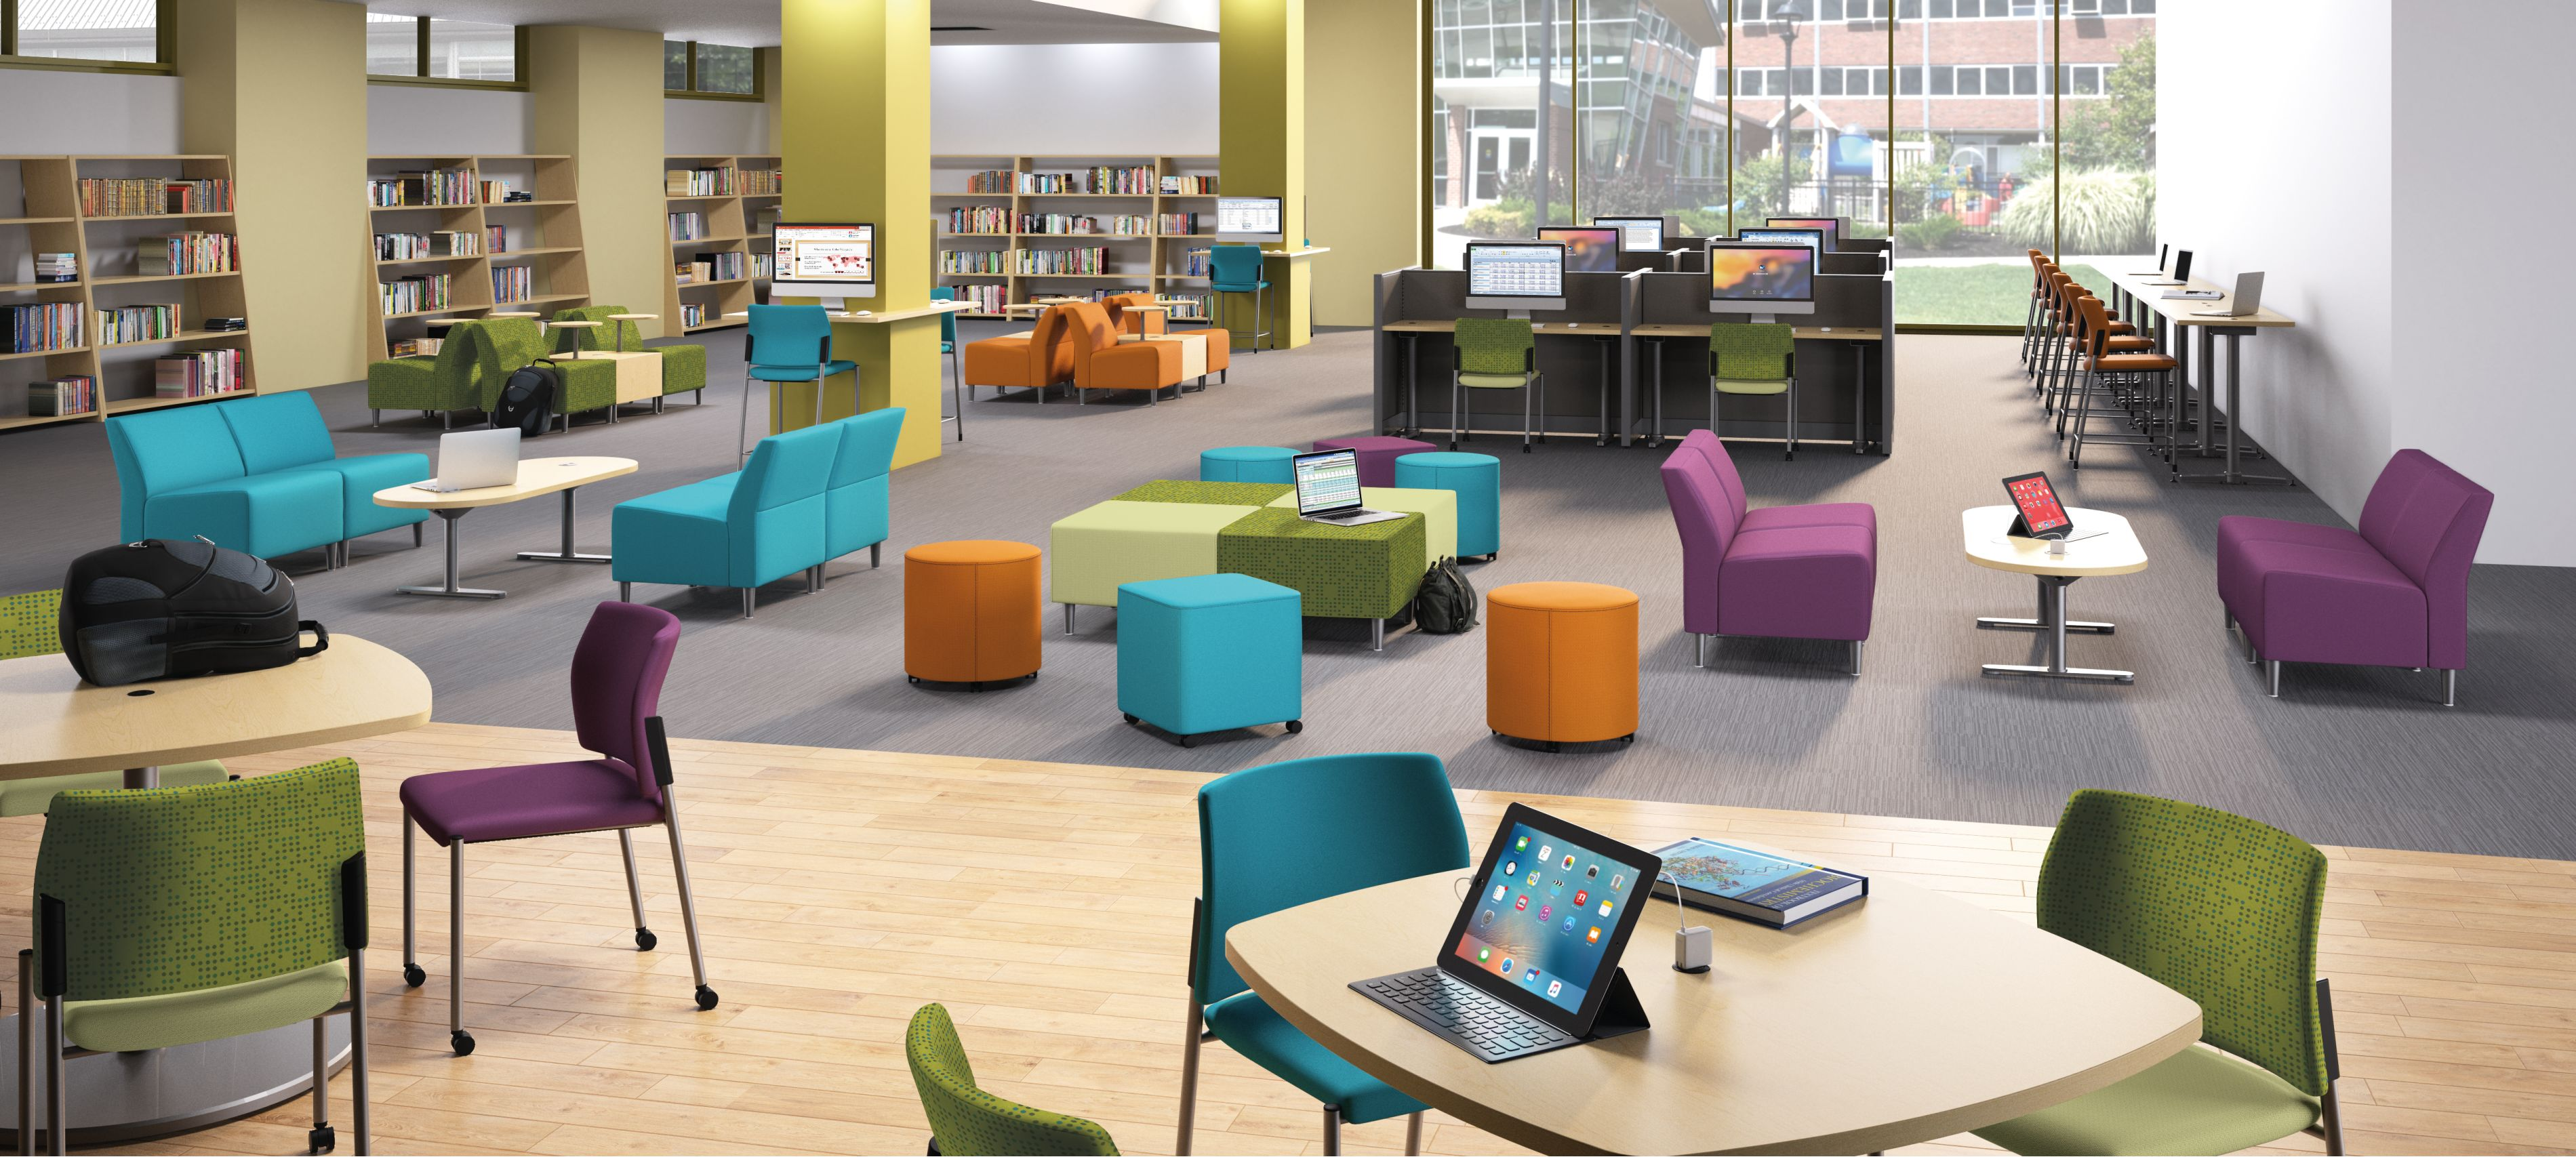 """Invite students to """"read and lead"""" within a library that sparks ingenuity and passion for learning."""